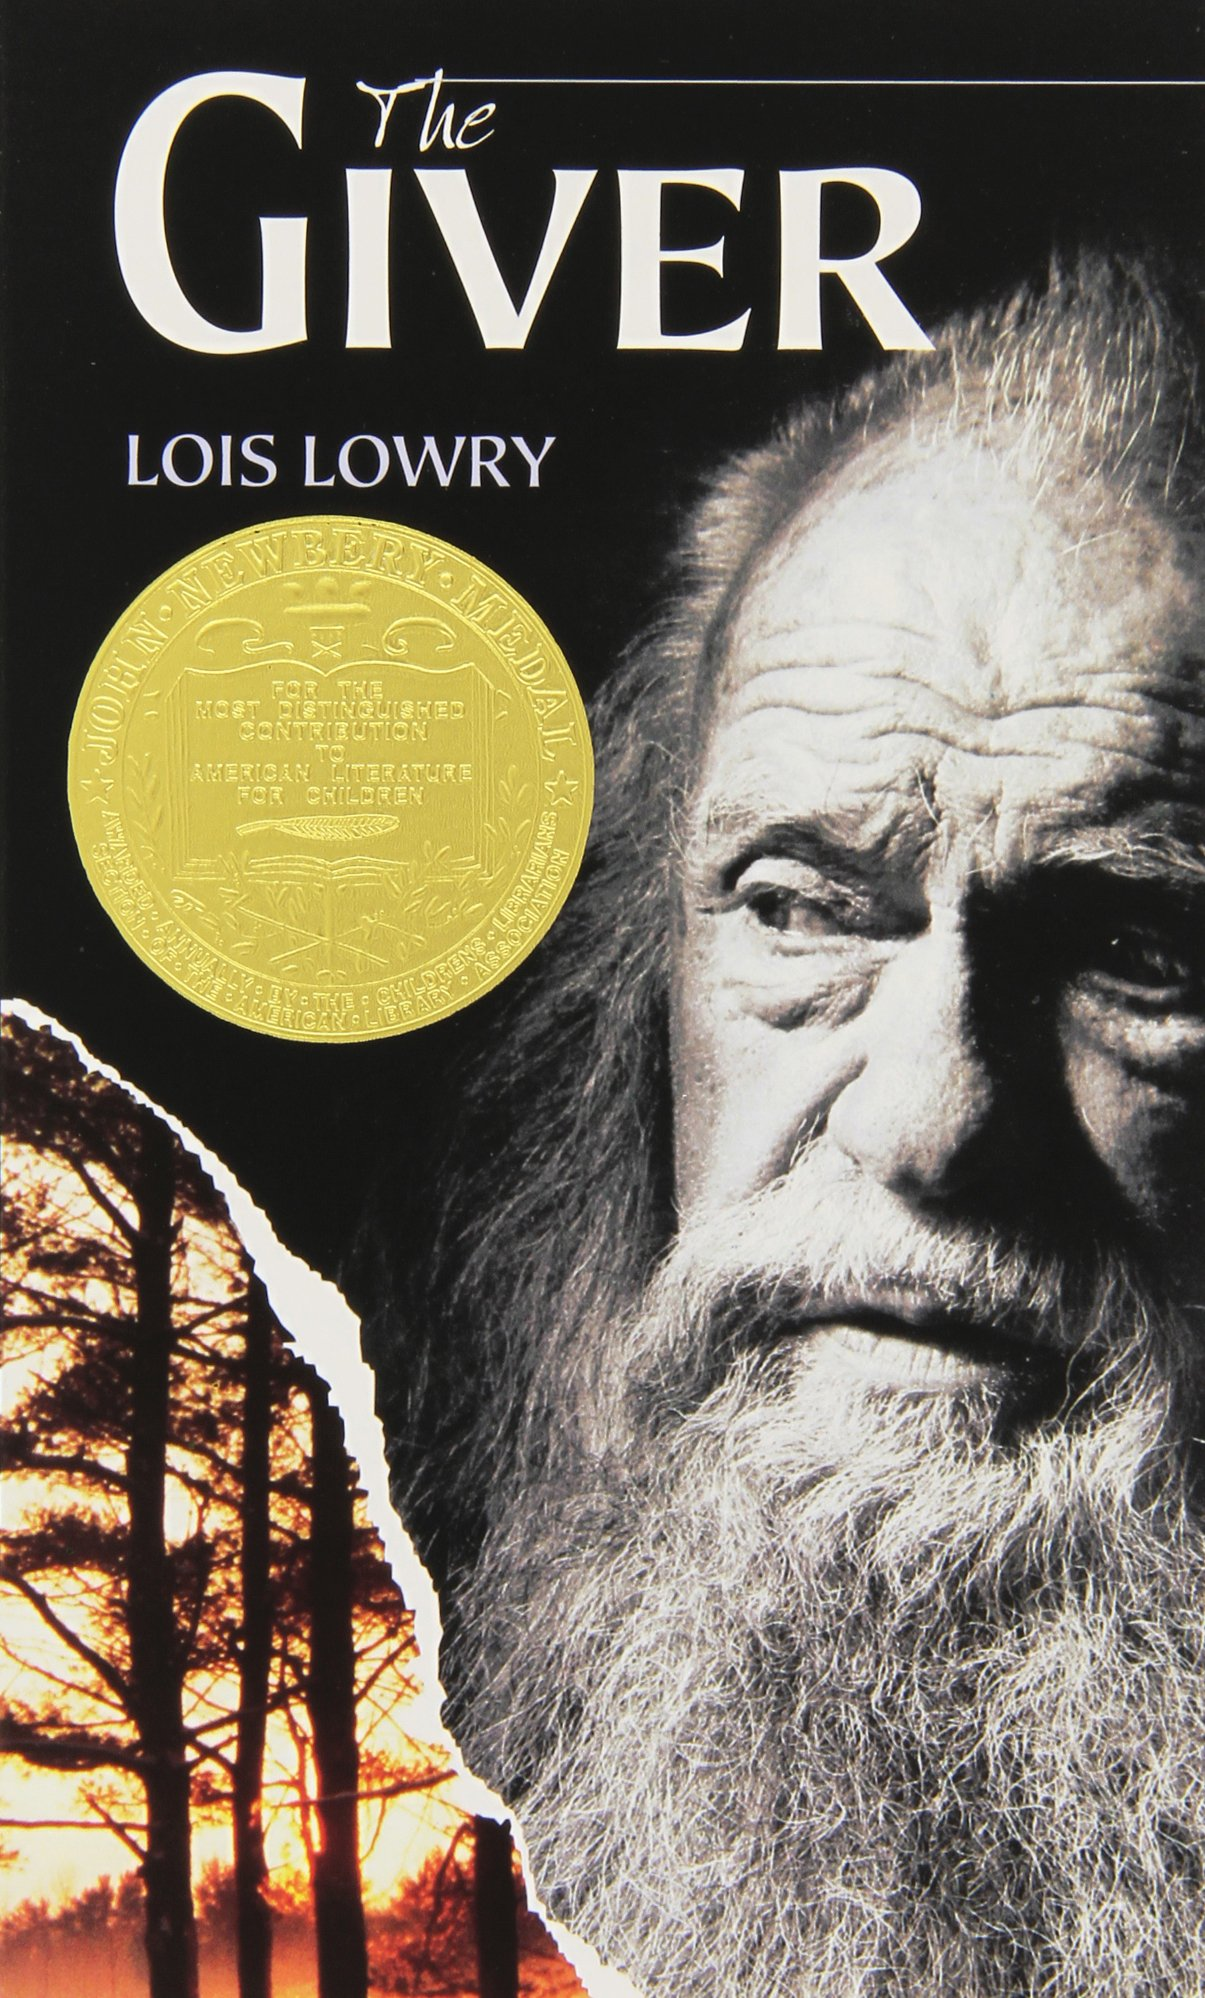 Amazon.com: The Giver (Giver Quartet) (9780440237686): Lowry, Lois: Books